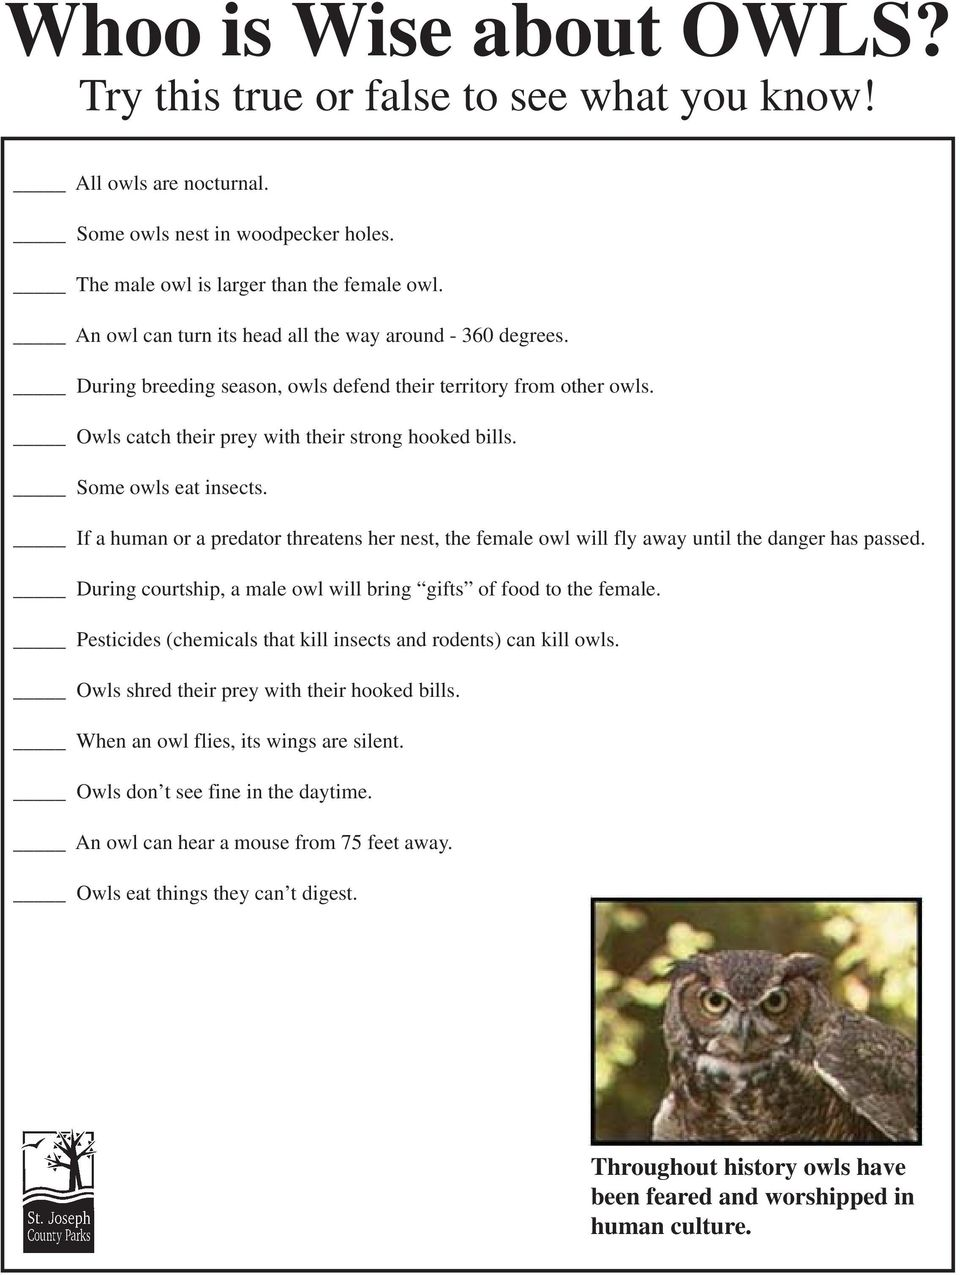 Some owls eat insects. If a human or a predator threatens her nest, the female owl will fly away until the danger has passed. During courtship, a male owl will bring gifts of food to the female.